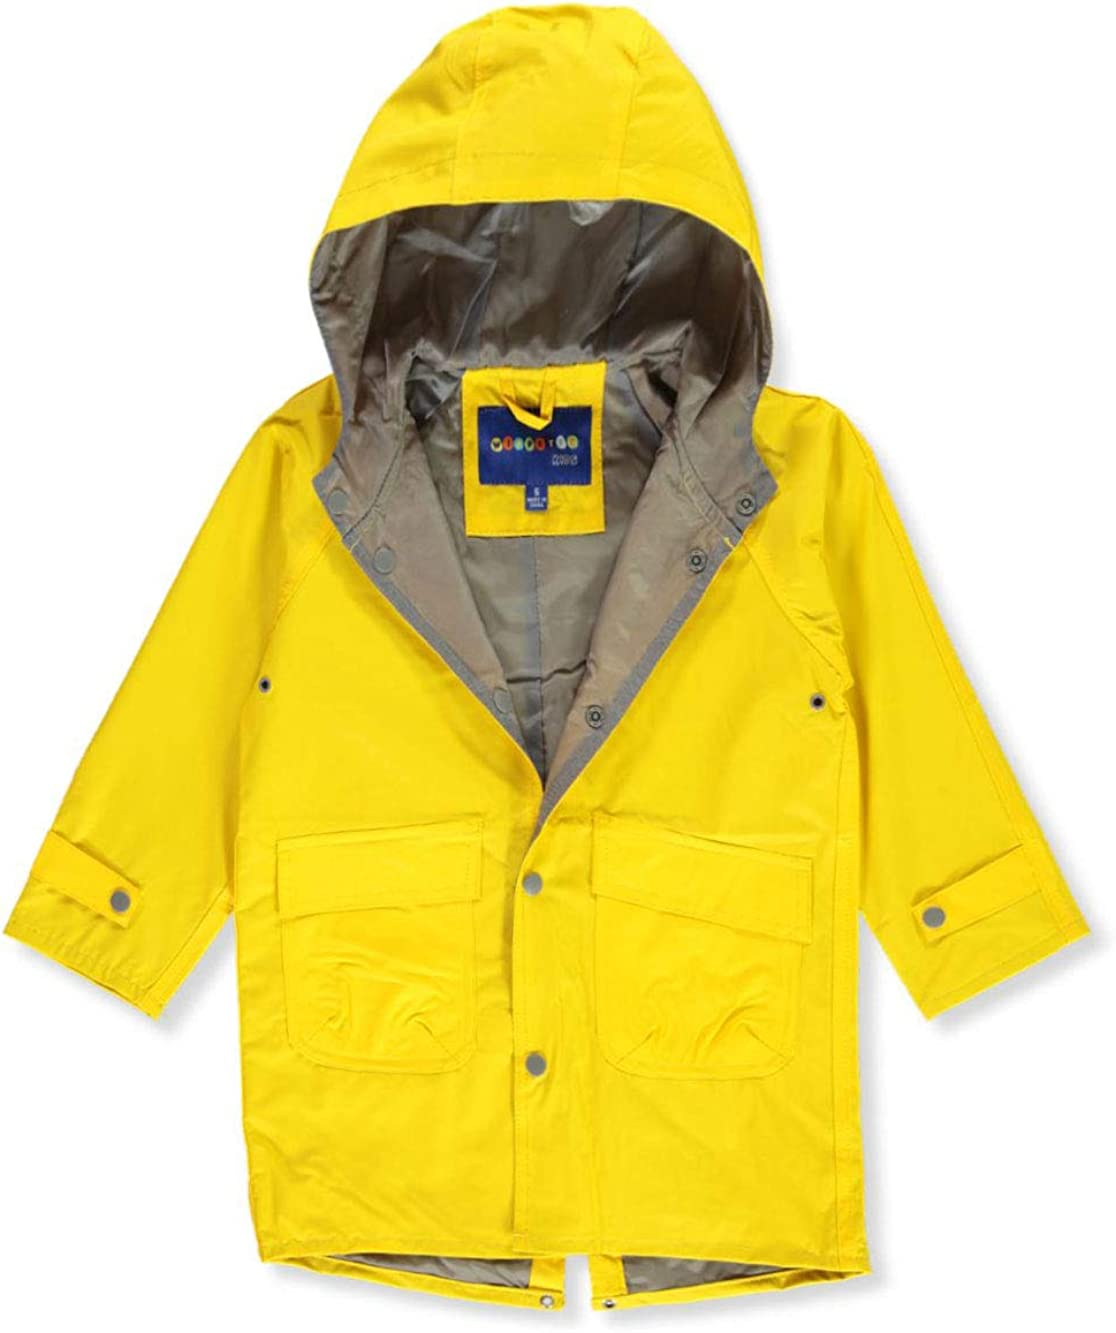 Wippette Unisex Raincoat - Yellow, 3t